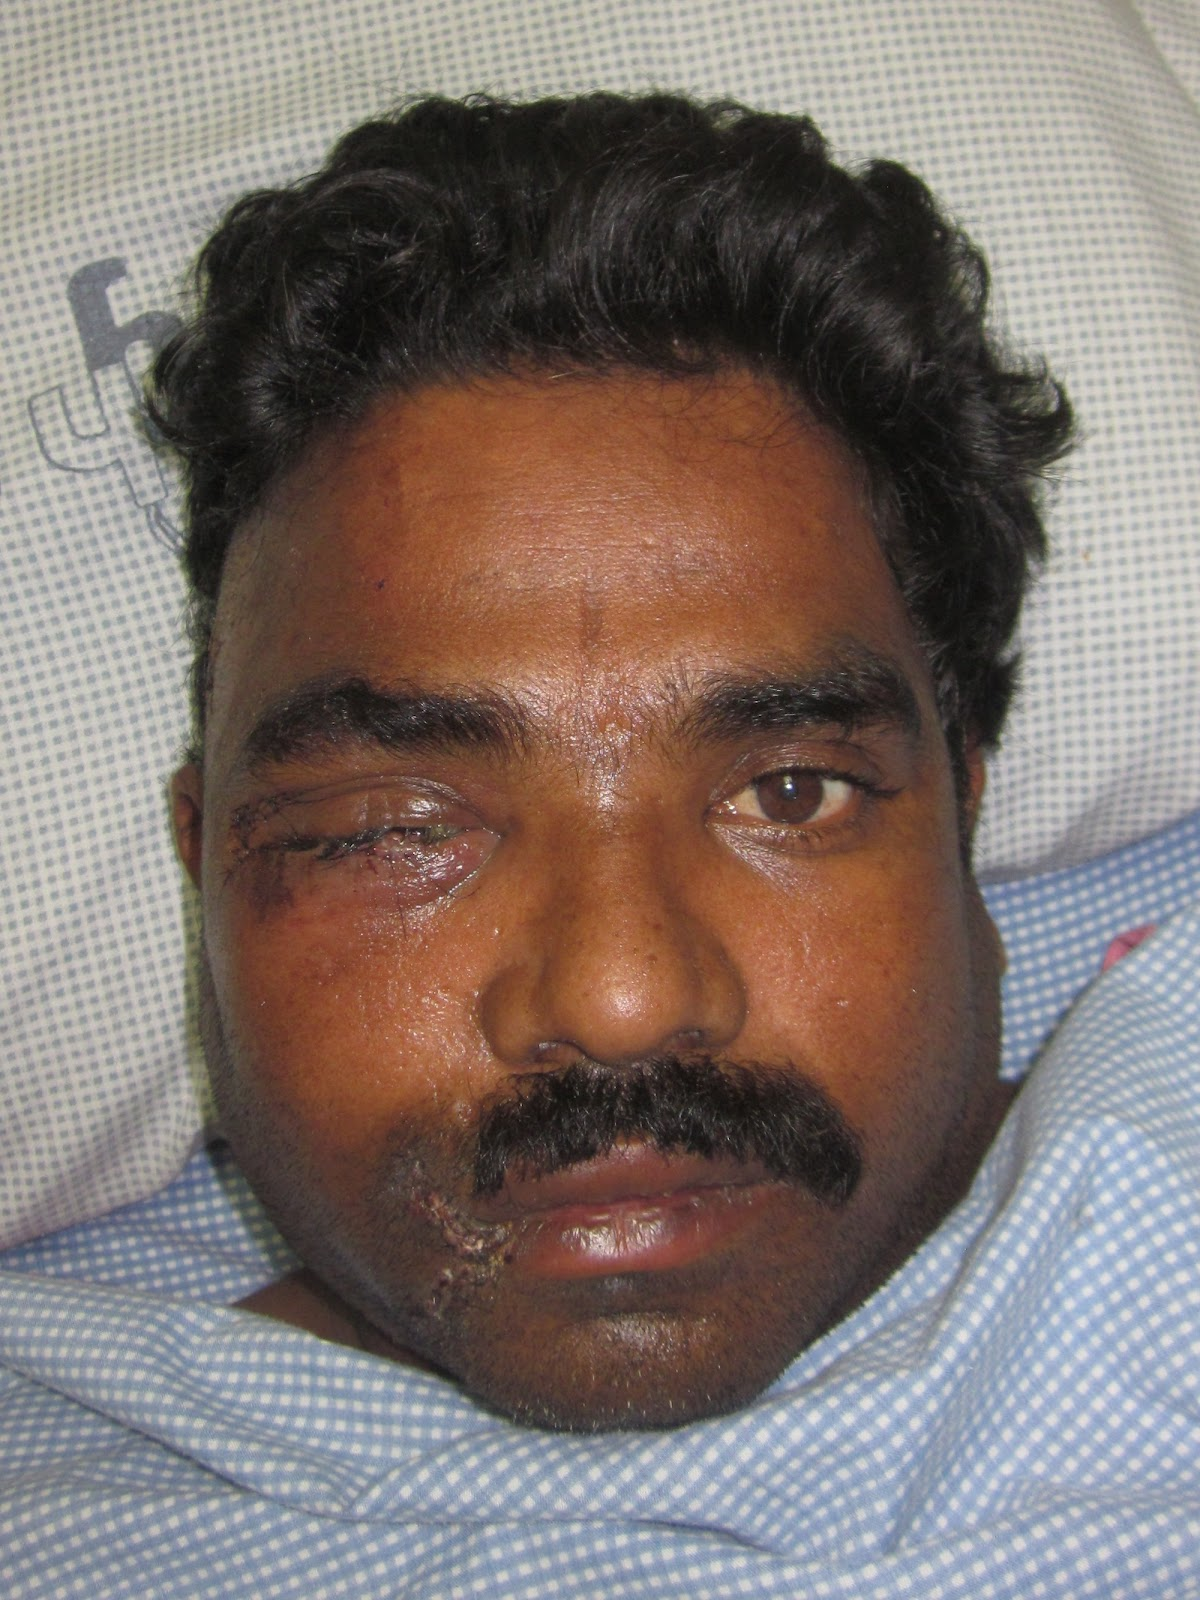 COMMUNITED DISPLACED FRACTURE ZYGOMA - OUTCOME-2.bp.blogspot.com